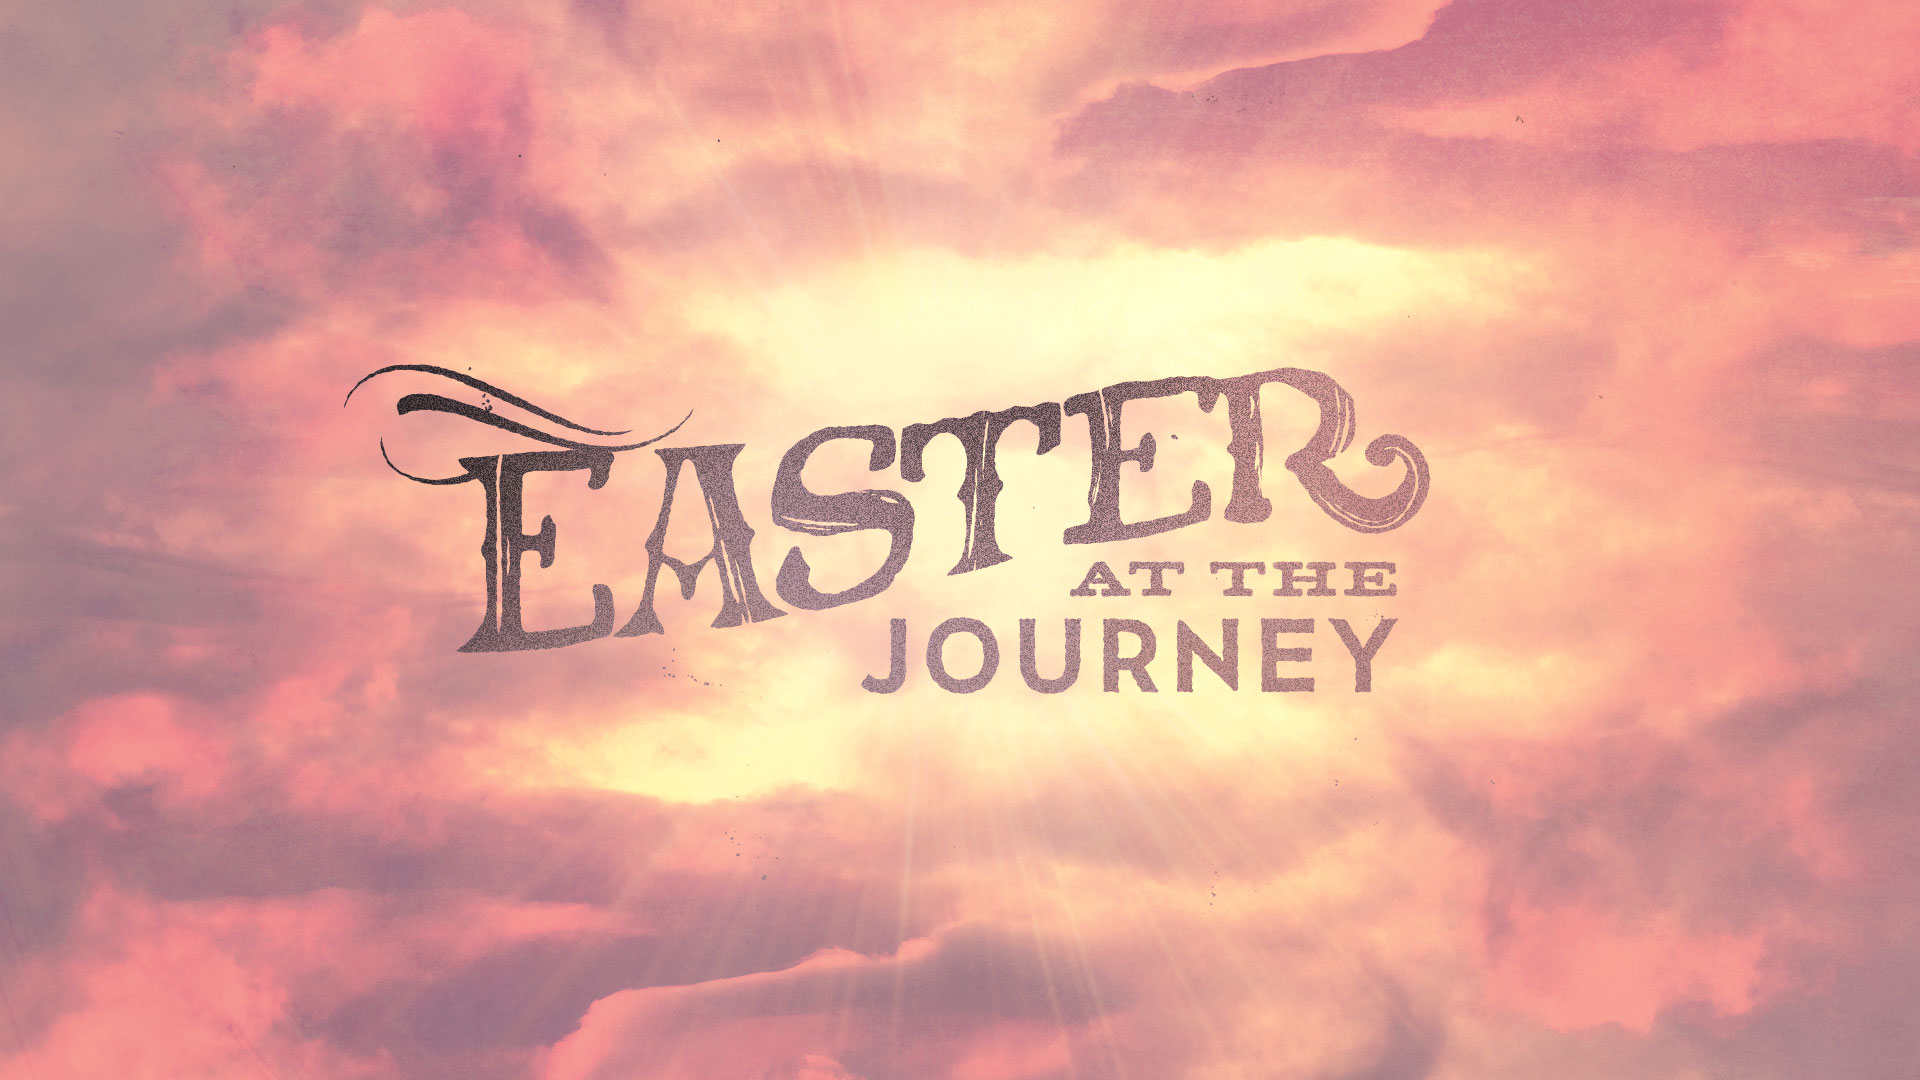 Don't Miss Easter At The Journey